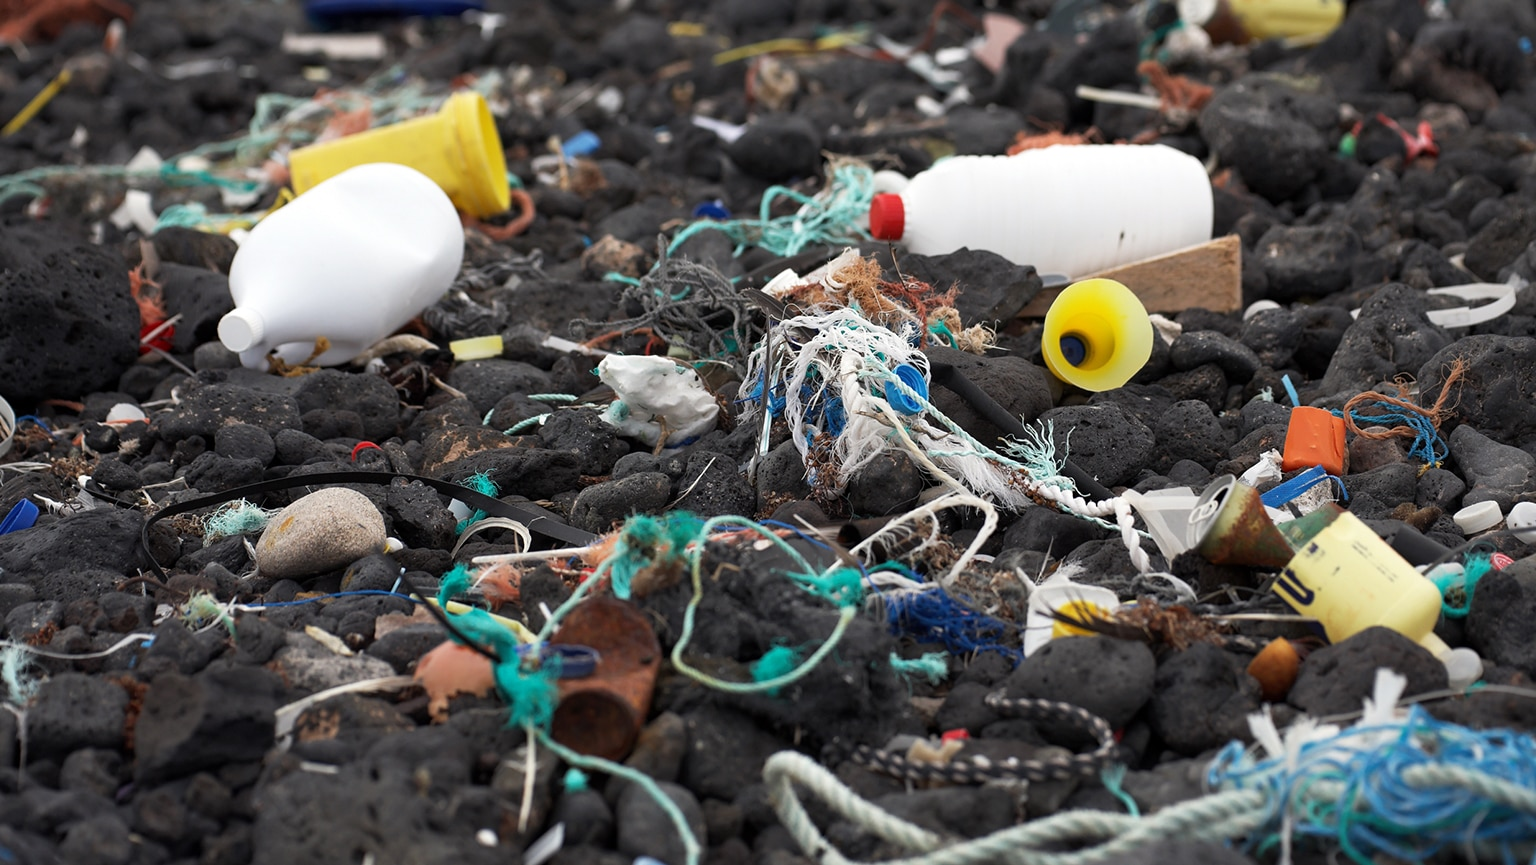 Marine Pollution—The Impact of Toxins